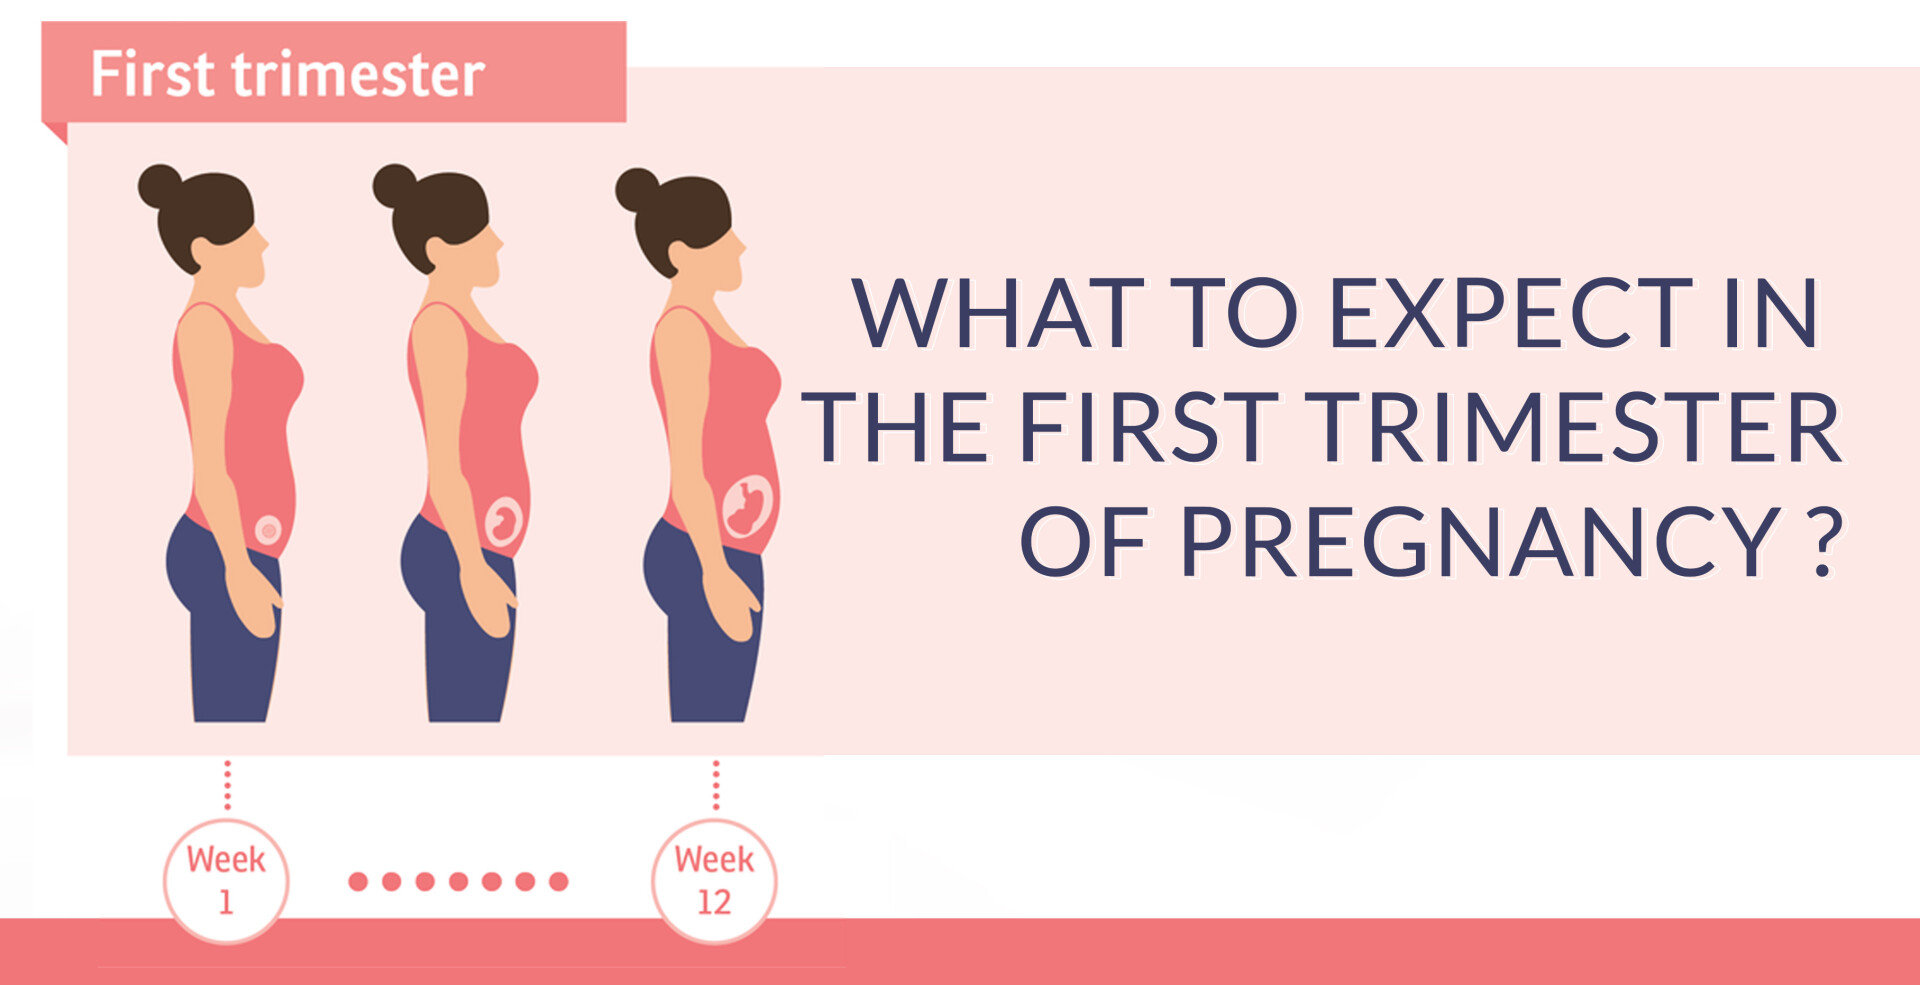 WHAT TO EXPECT IN THE FIRST TRIMESTER OF PREGNANCY